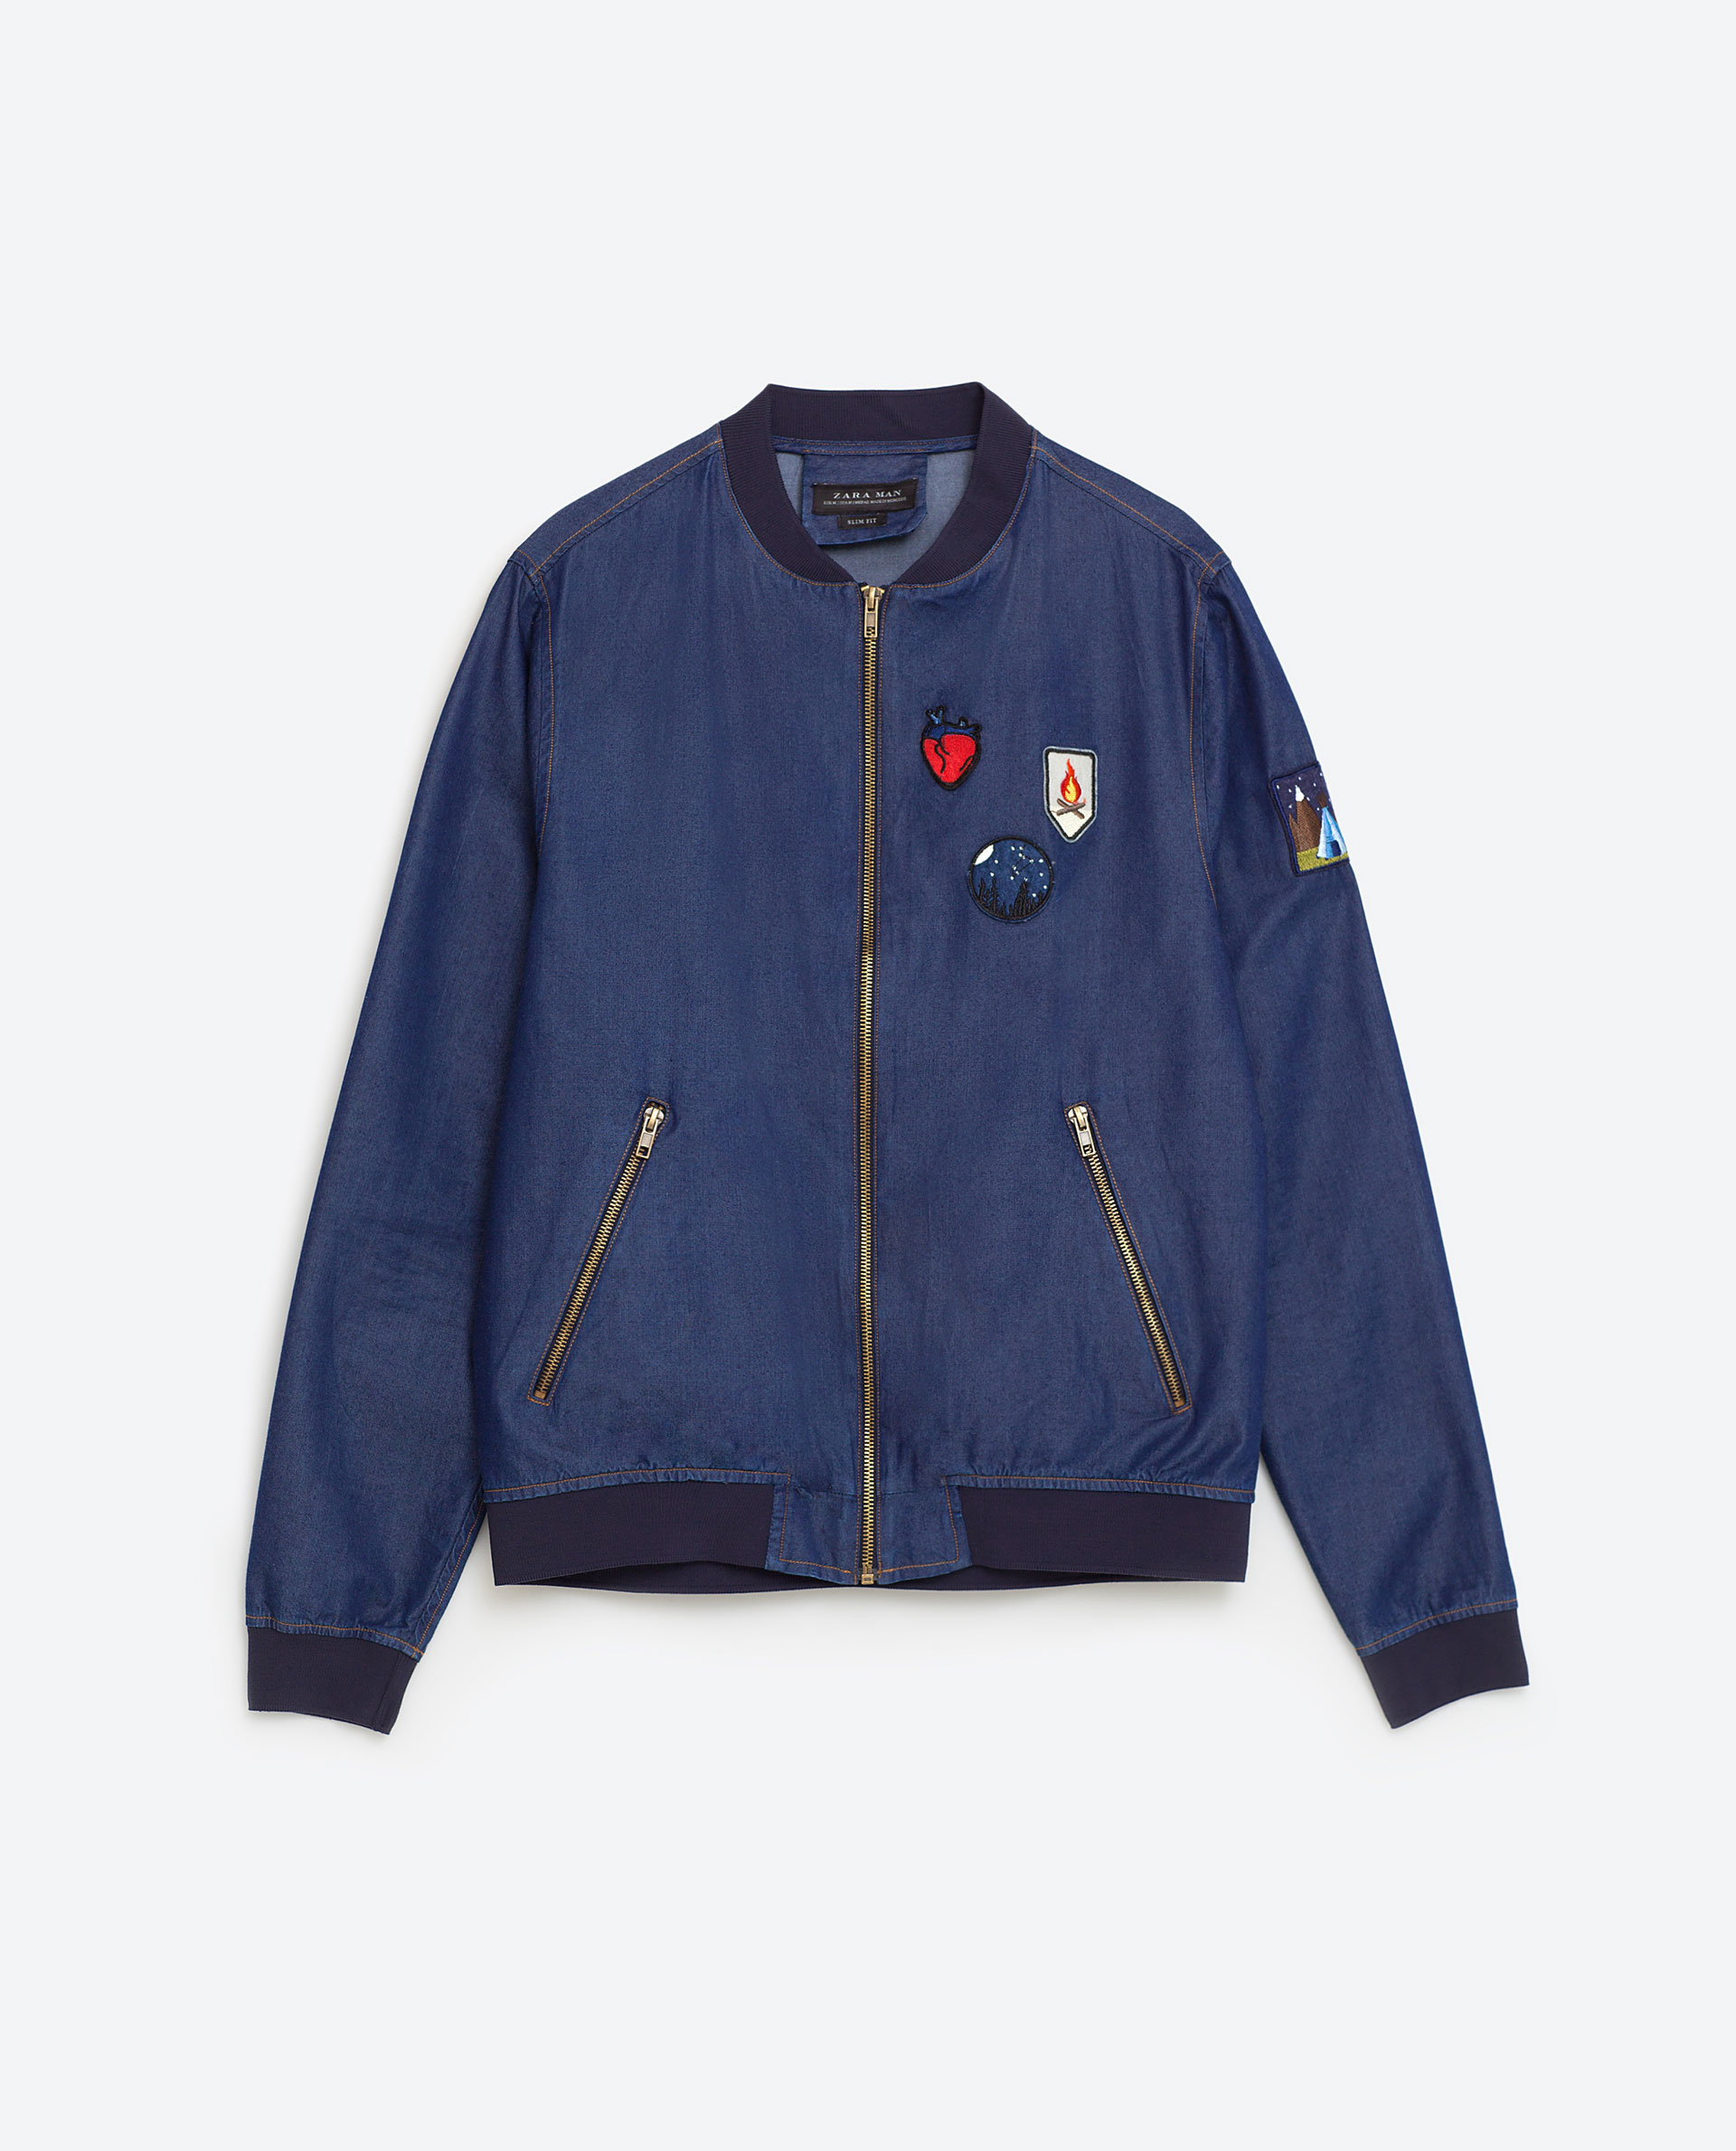 Zara Indigo Patches Bomber Jacket In Blue For Men | Lyst